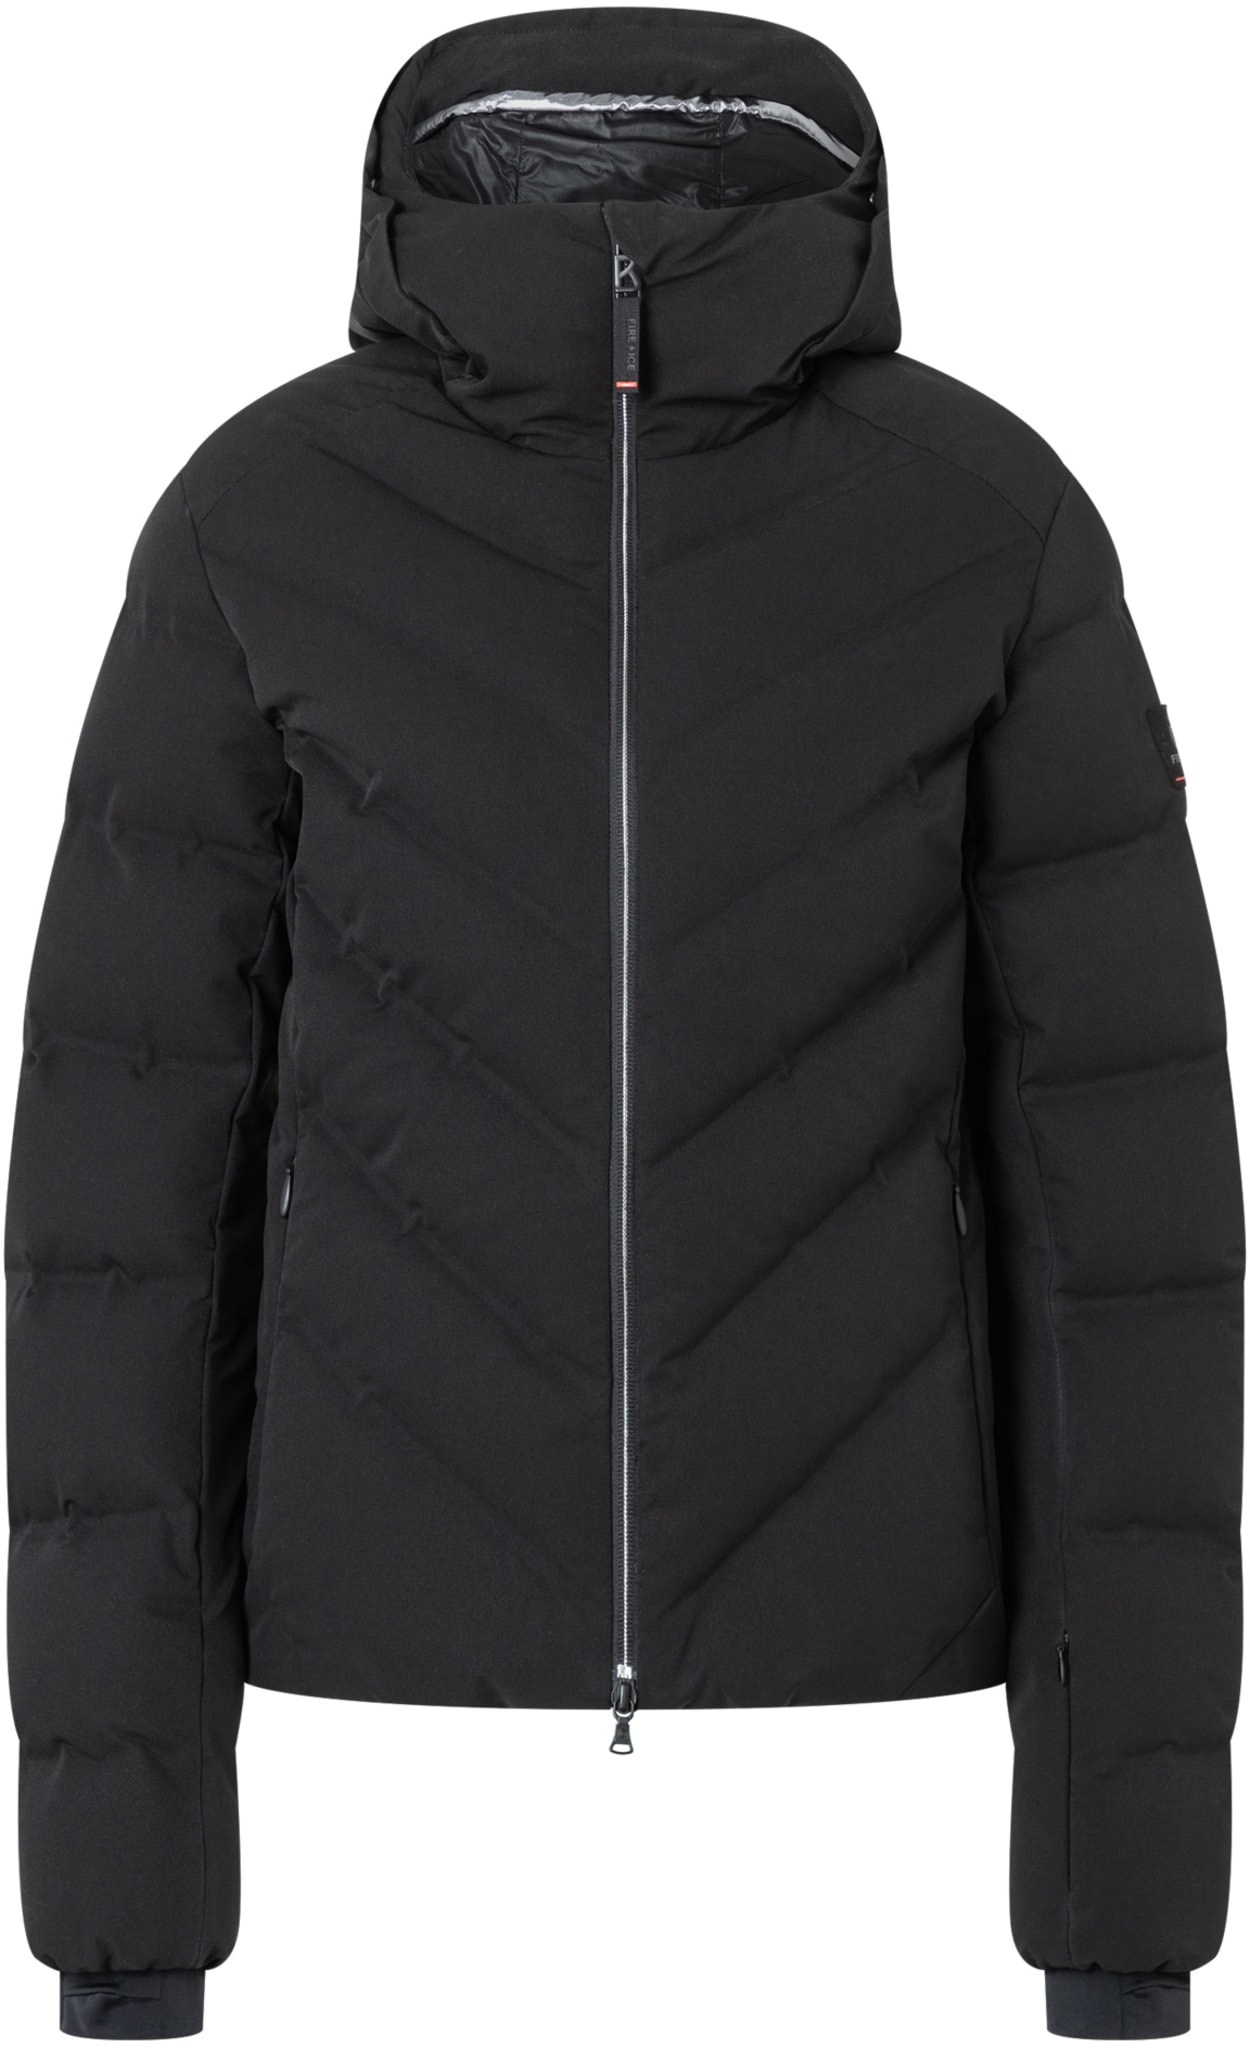 Carla Insulated Ski Jacket